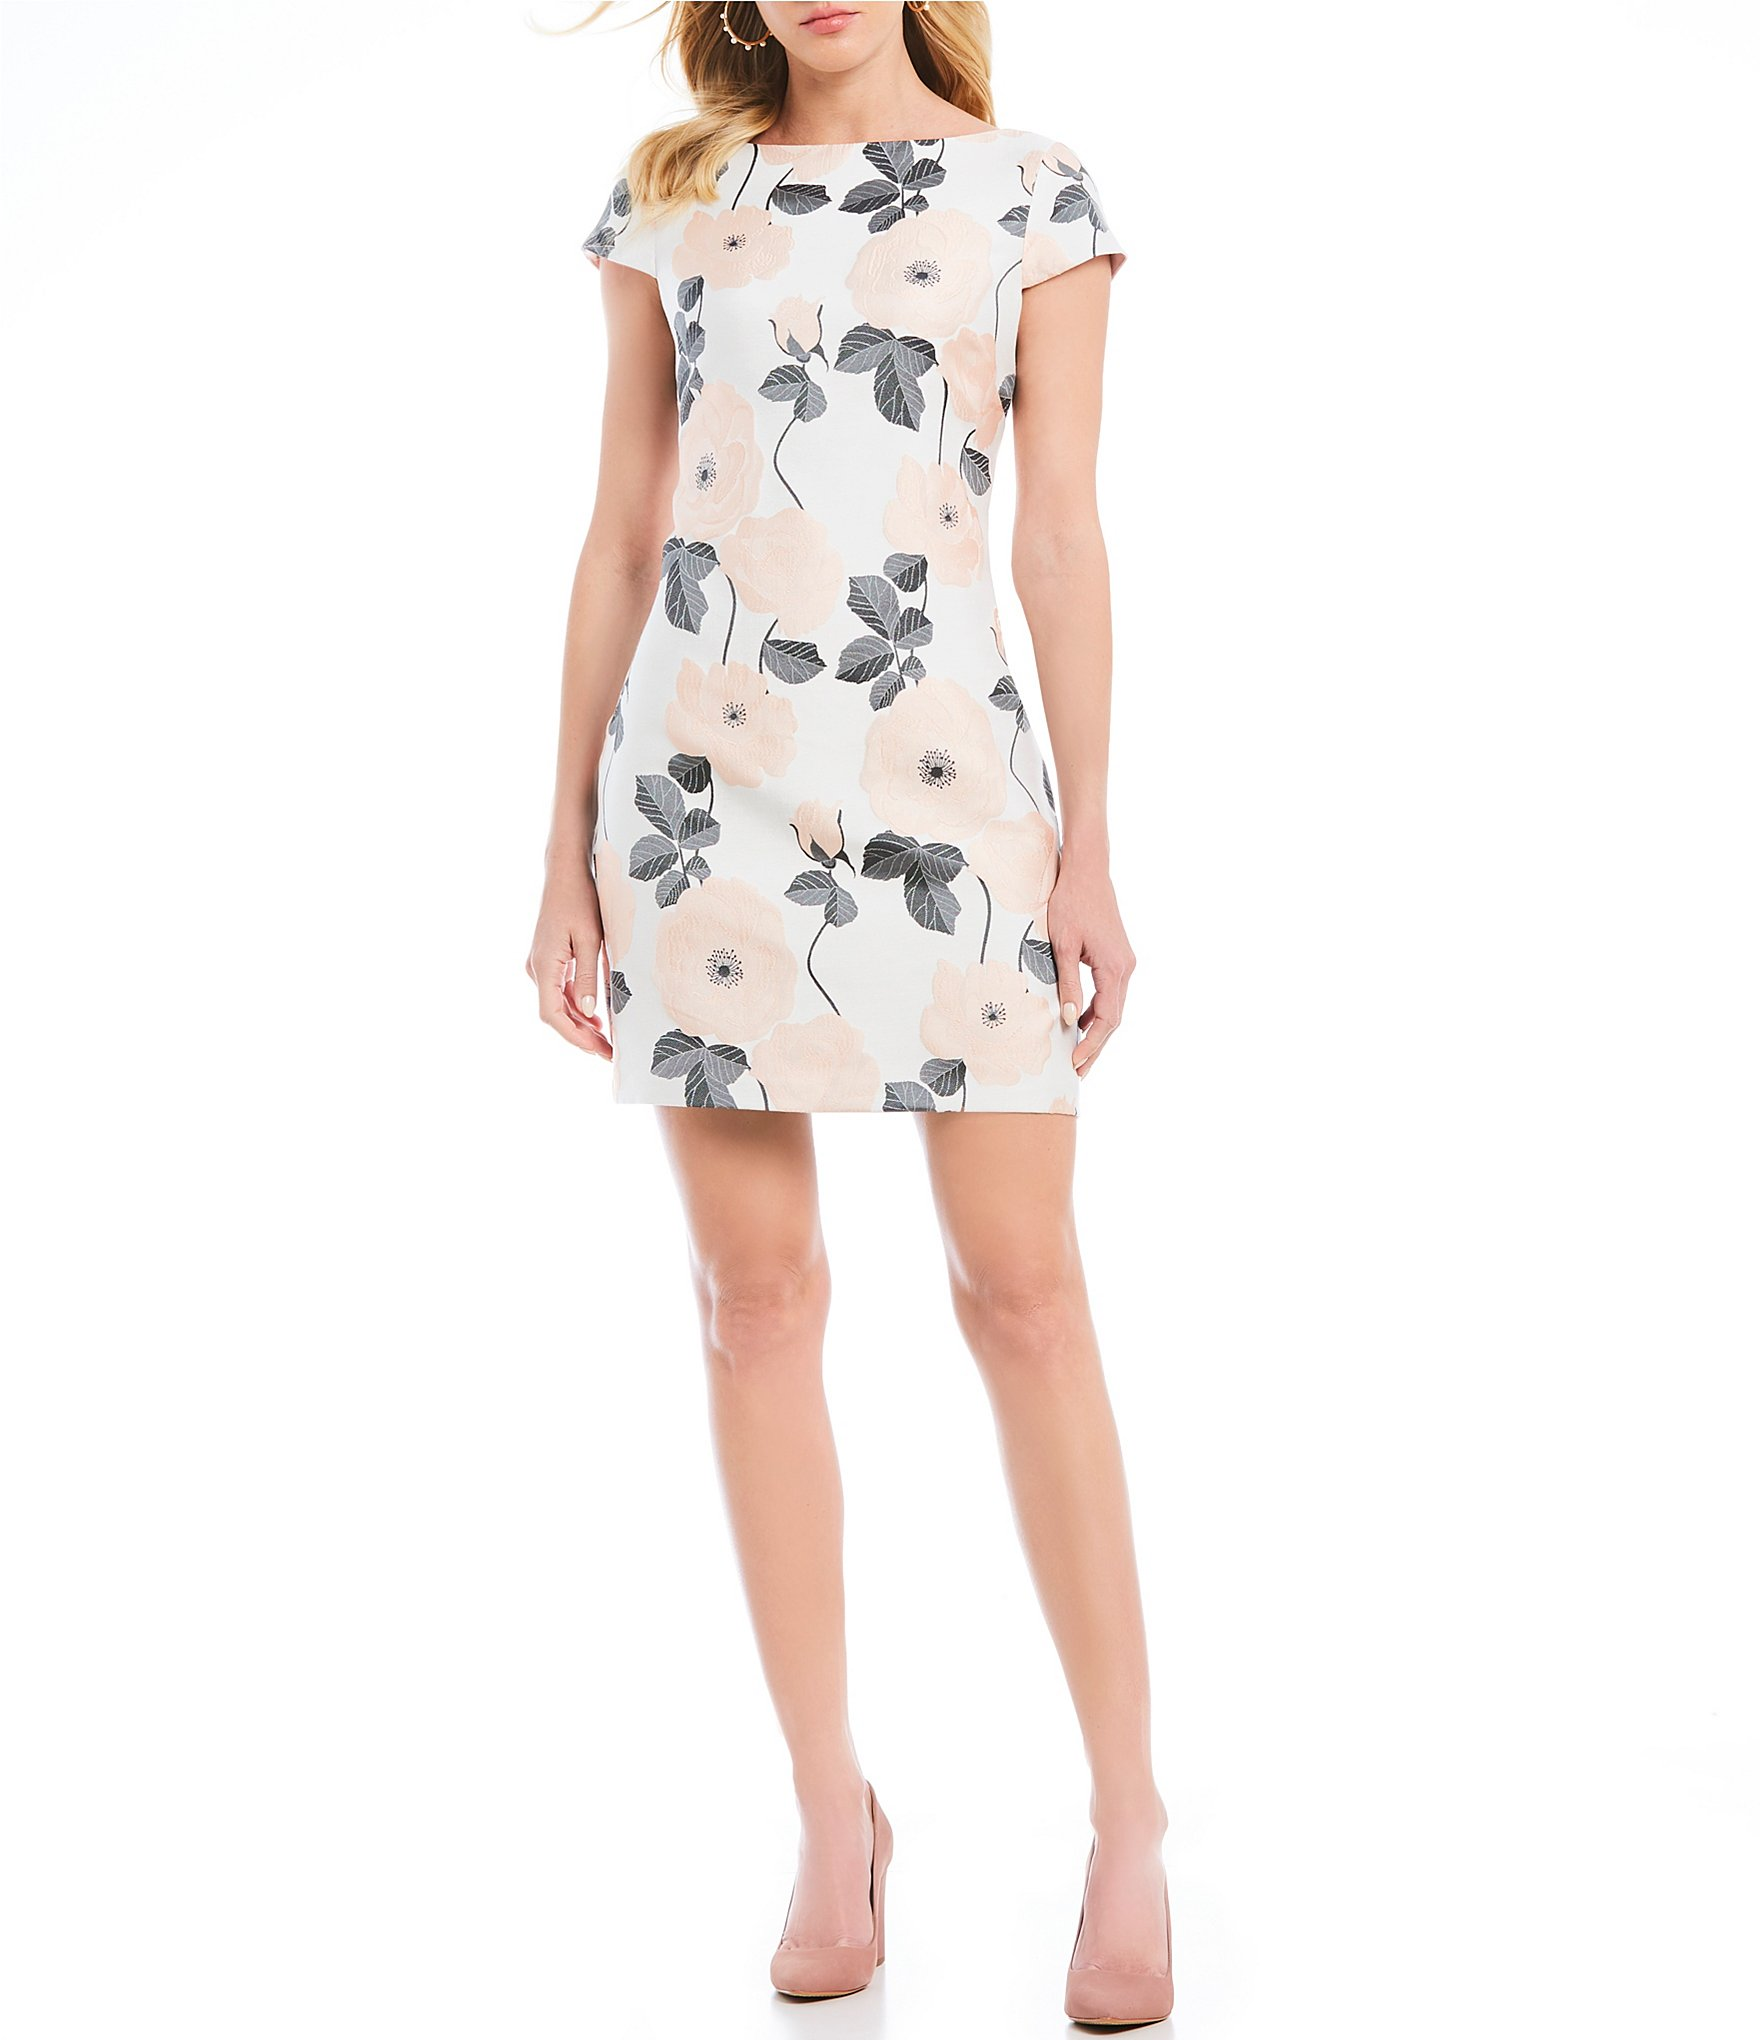 036b5c57adc Floral Women s Cocktail   Party Dresses